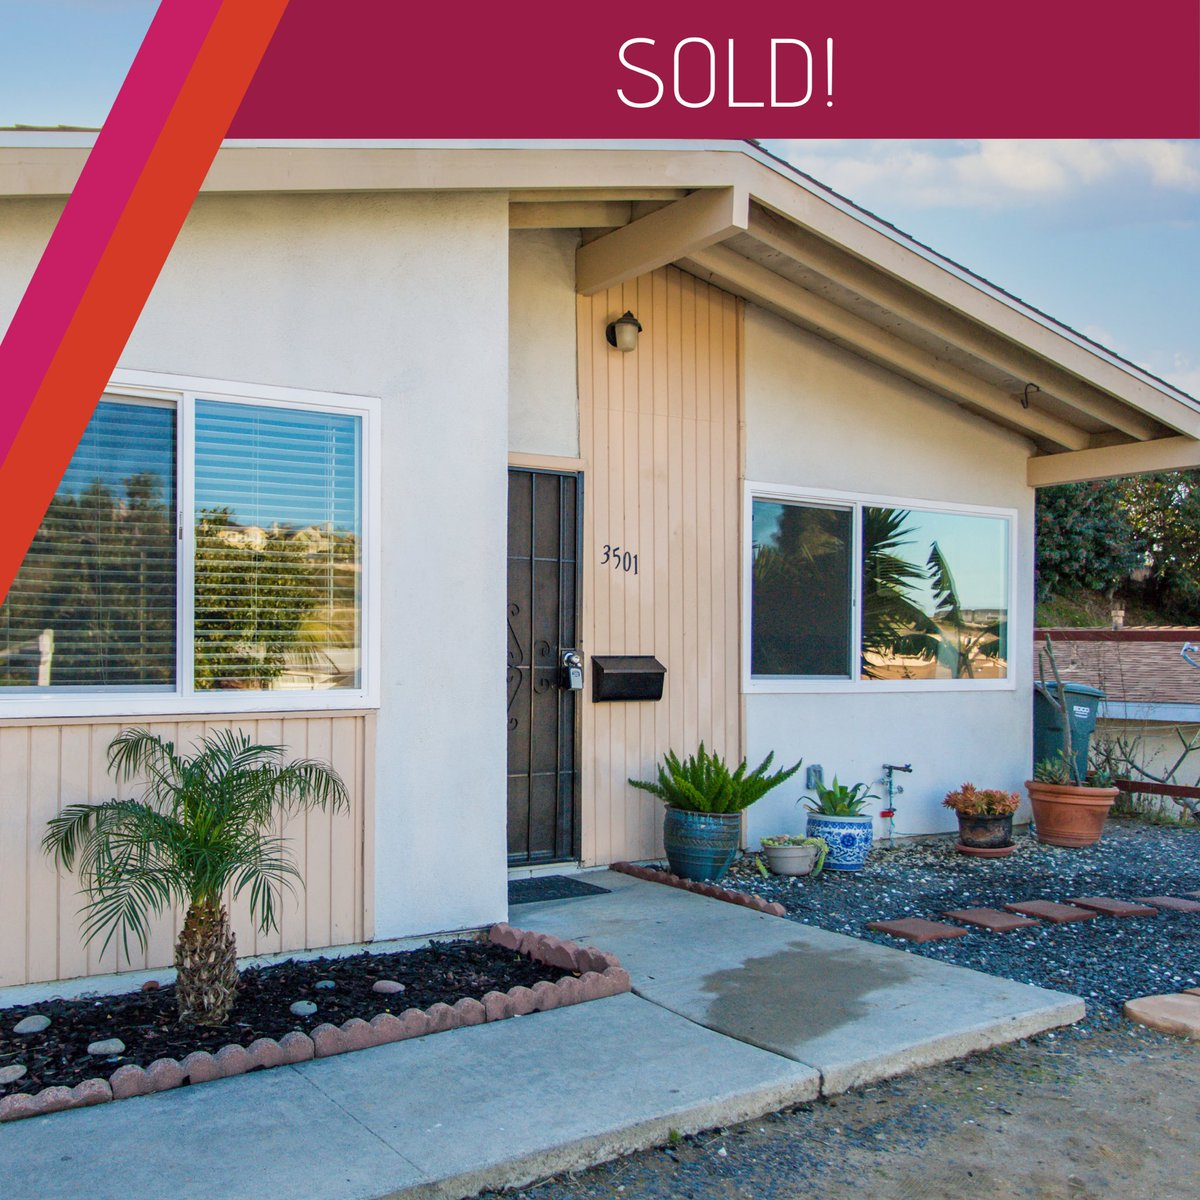 What a privilege and honor to help a young military family, with a baby on the way, buy their first home in San Marcos! We can't wait to see how you transform your new house into a home! • Special thanks to our team and the team @alignedmortgage • #sold #homeowners #military